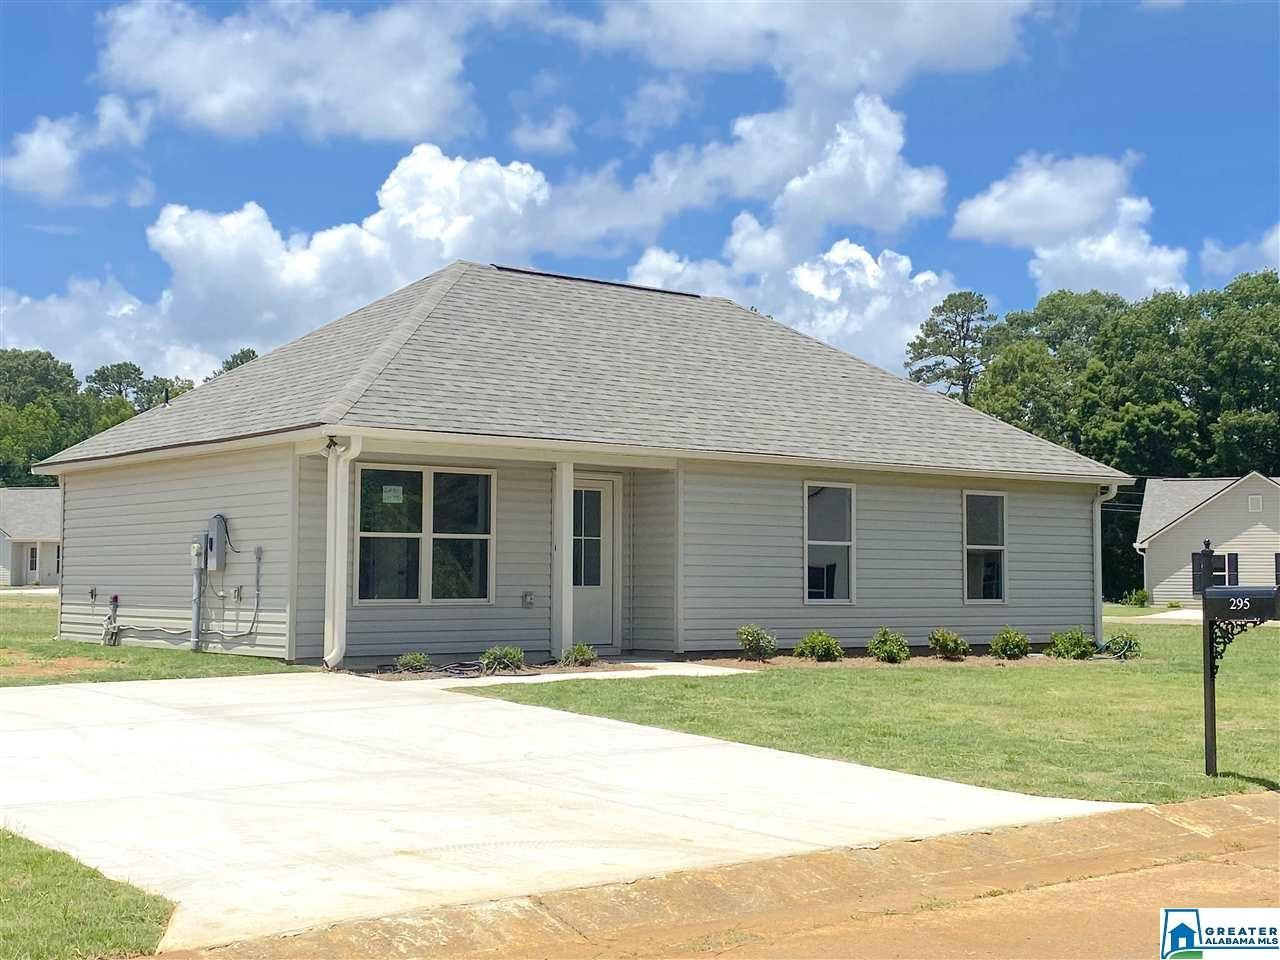 295 SUNLIGHT CIR, Talladega, AL 35160 - MLS#: 878654